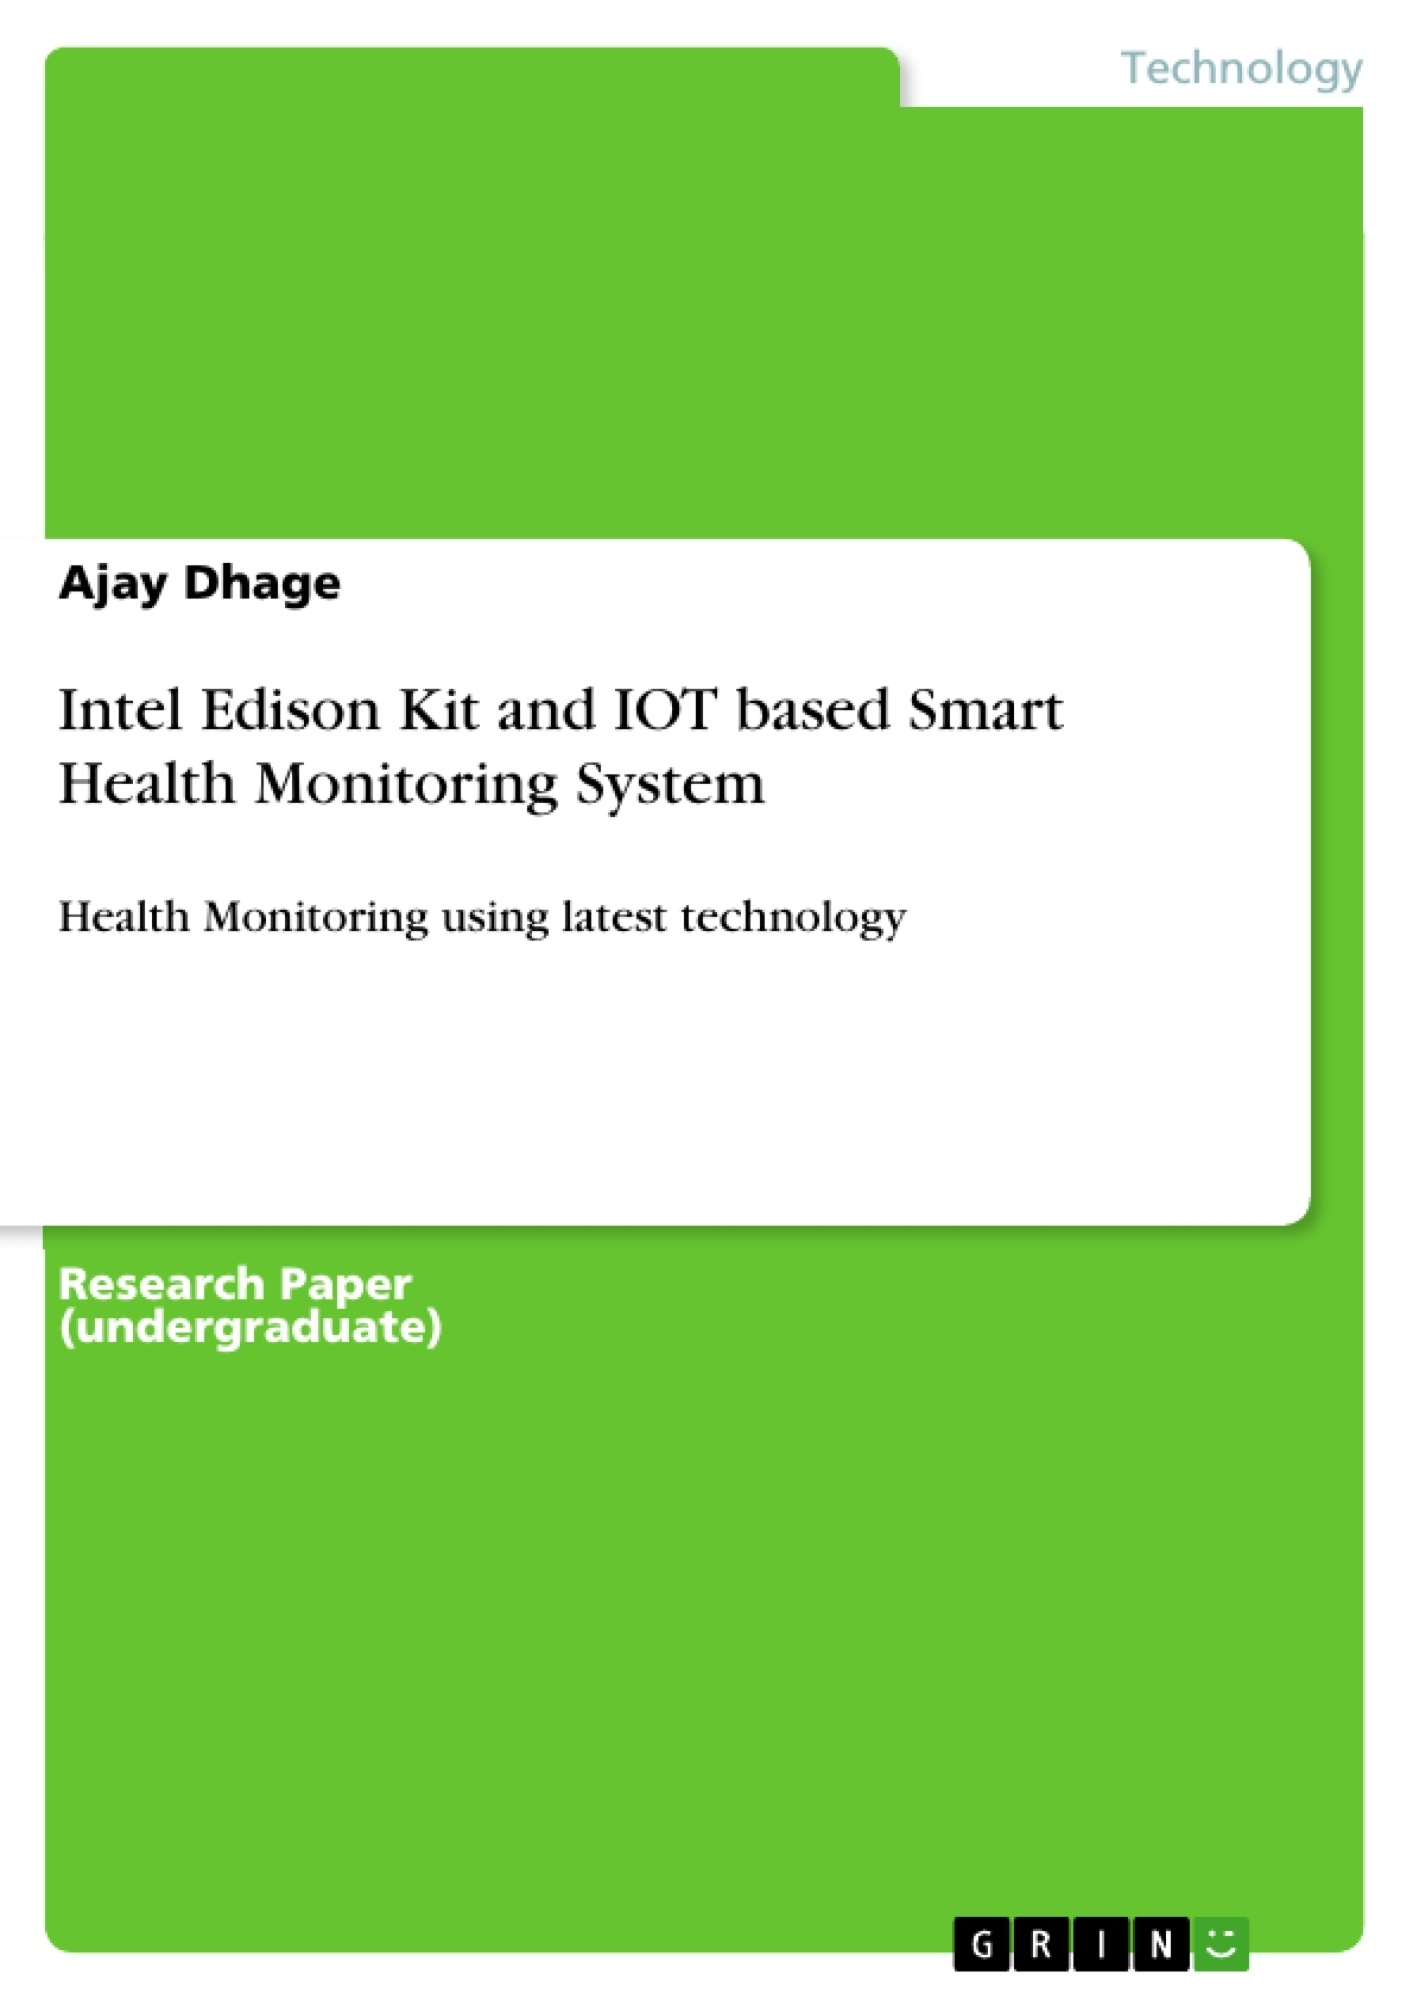 Title: Intel Edison Kit and IOT based Smart Health Monitoring System